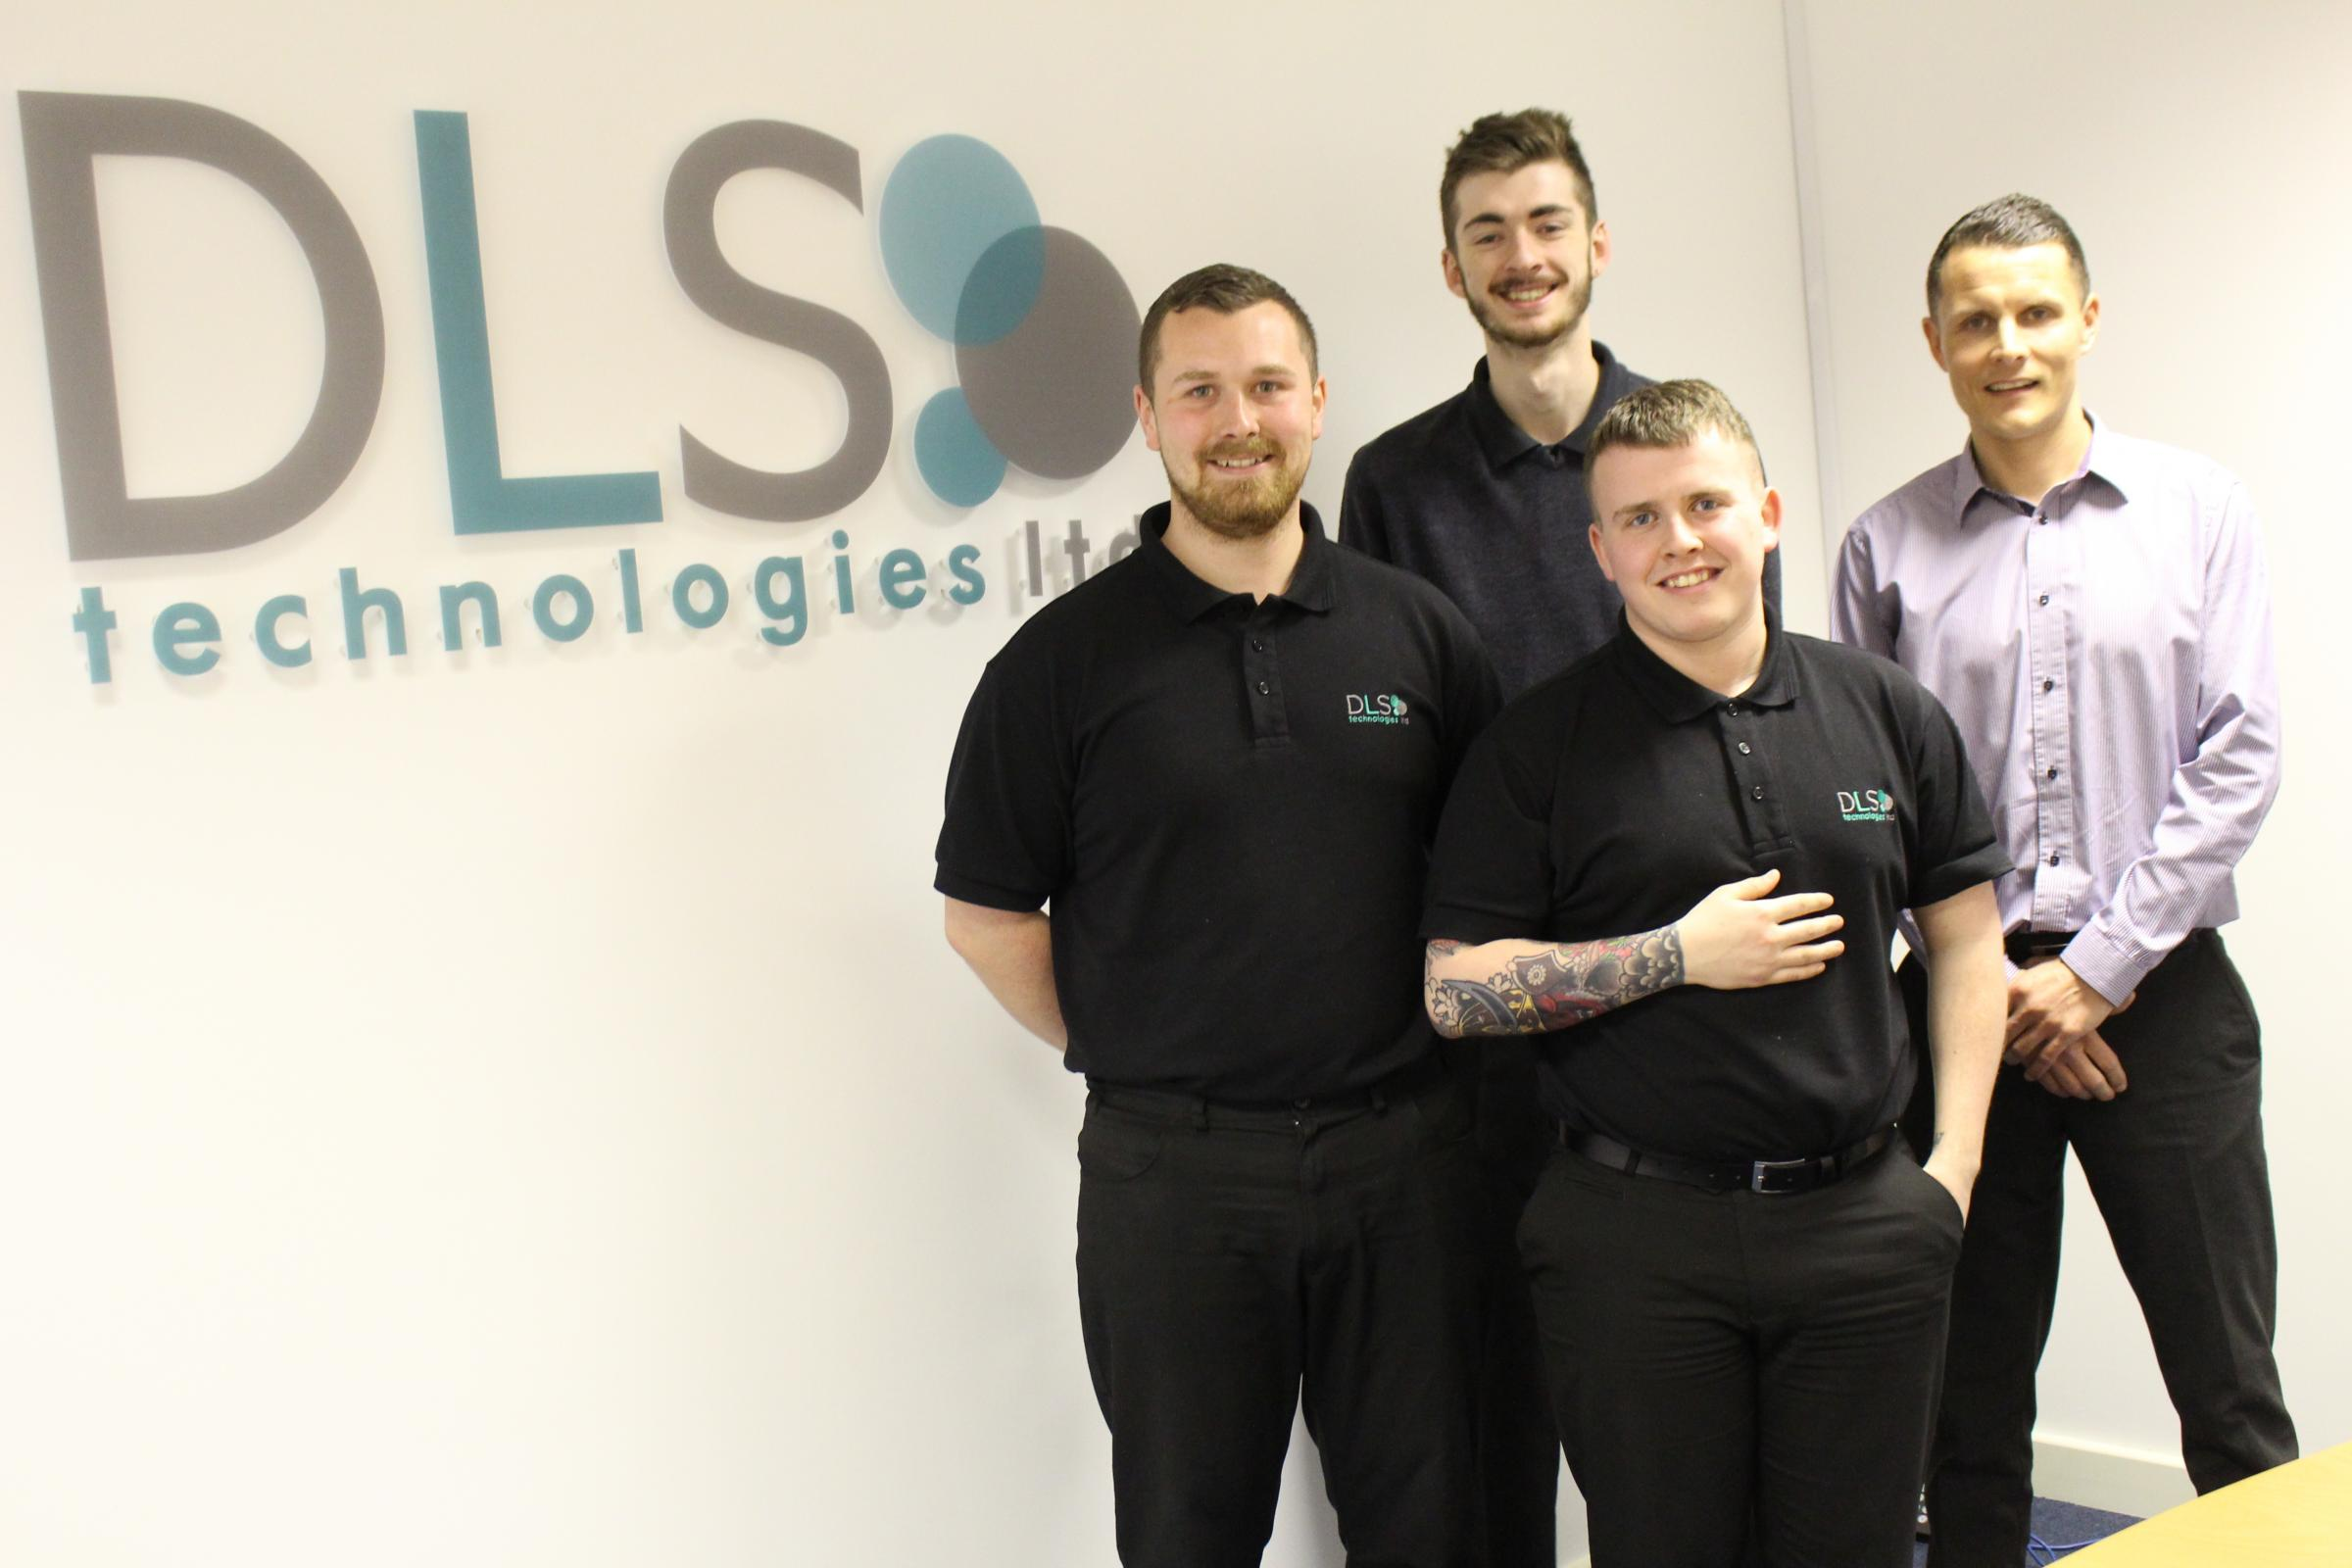 From left, Aaron Sanderson, Thomas Philips, Steven Moore, Liam Anderson. IT Apprentices Programme Business Success.